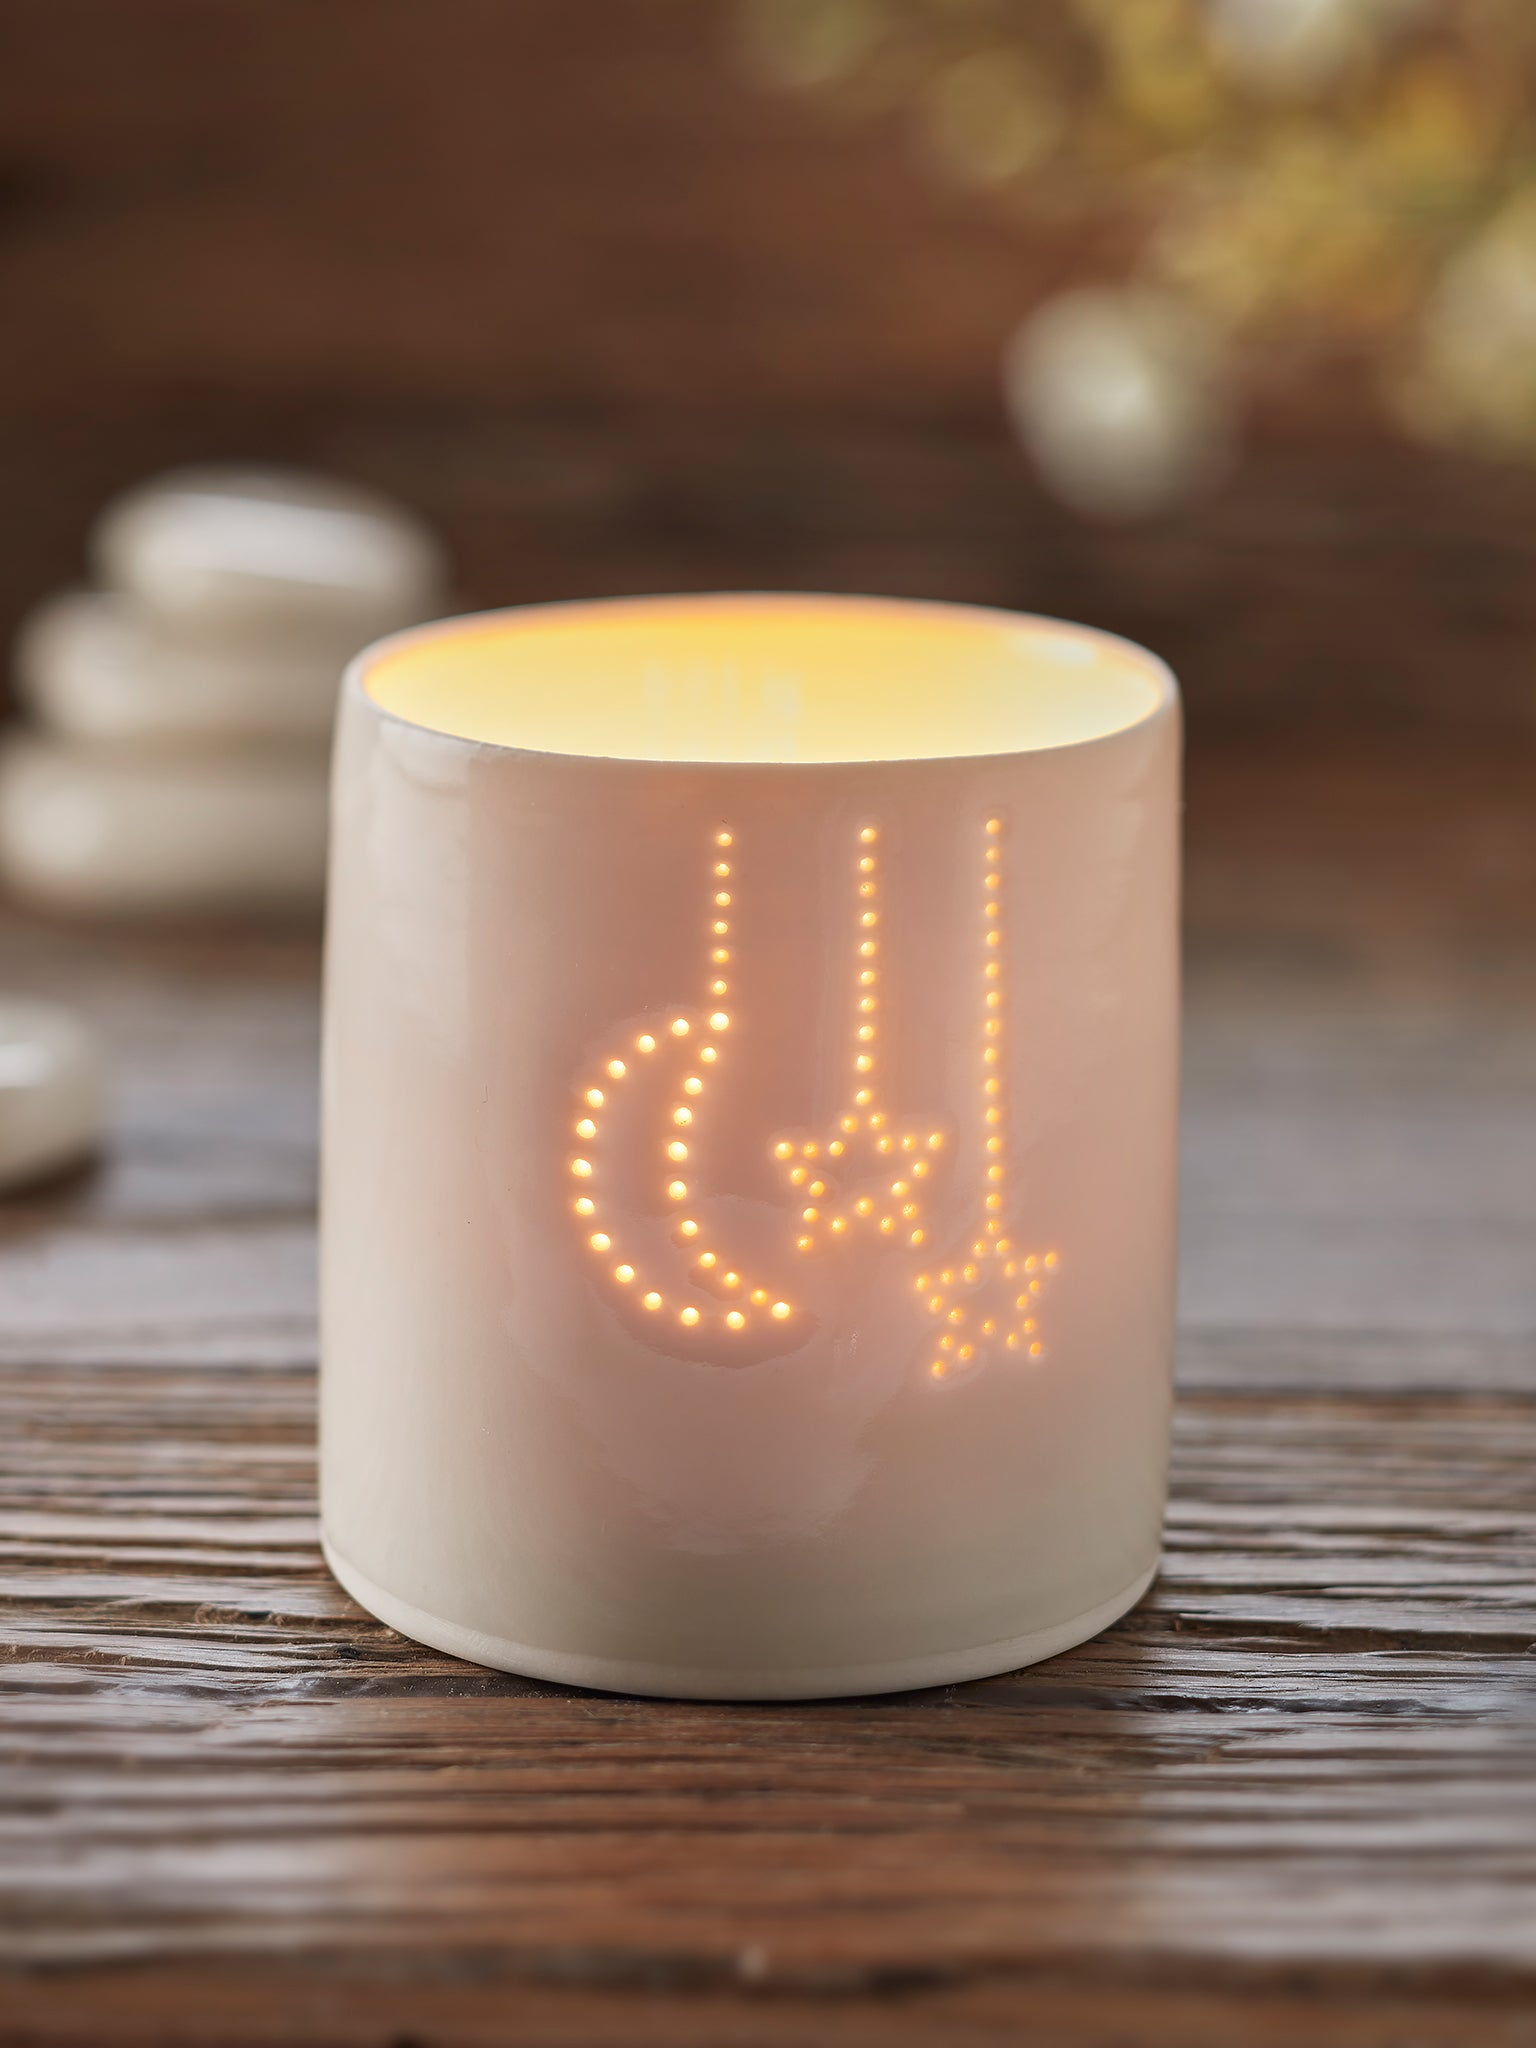 Yogamatters Handmade Porcelain Tea Light Holder - Moon + Stars